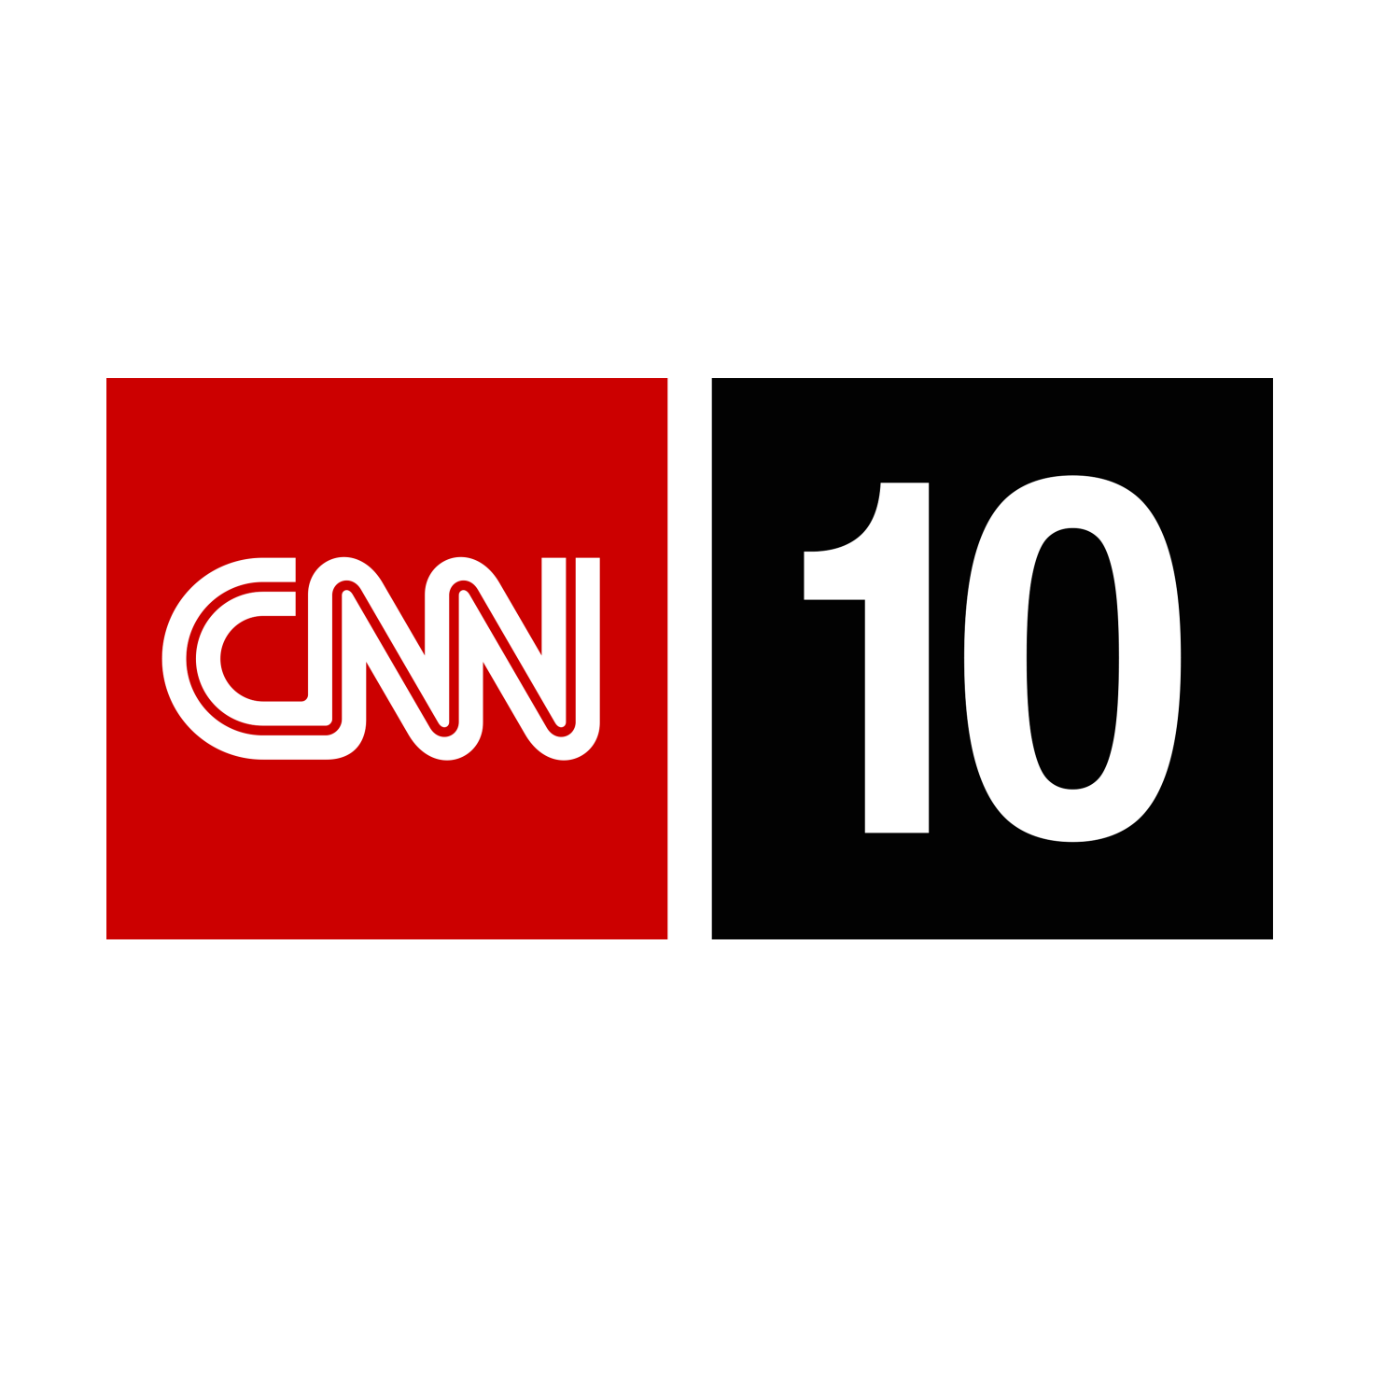 CNN Student News - May 16, 2013